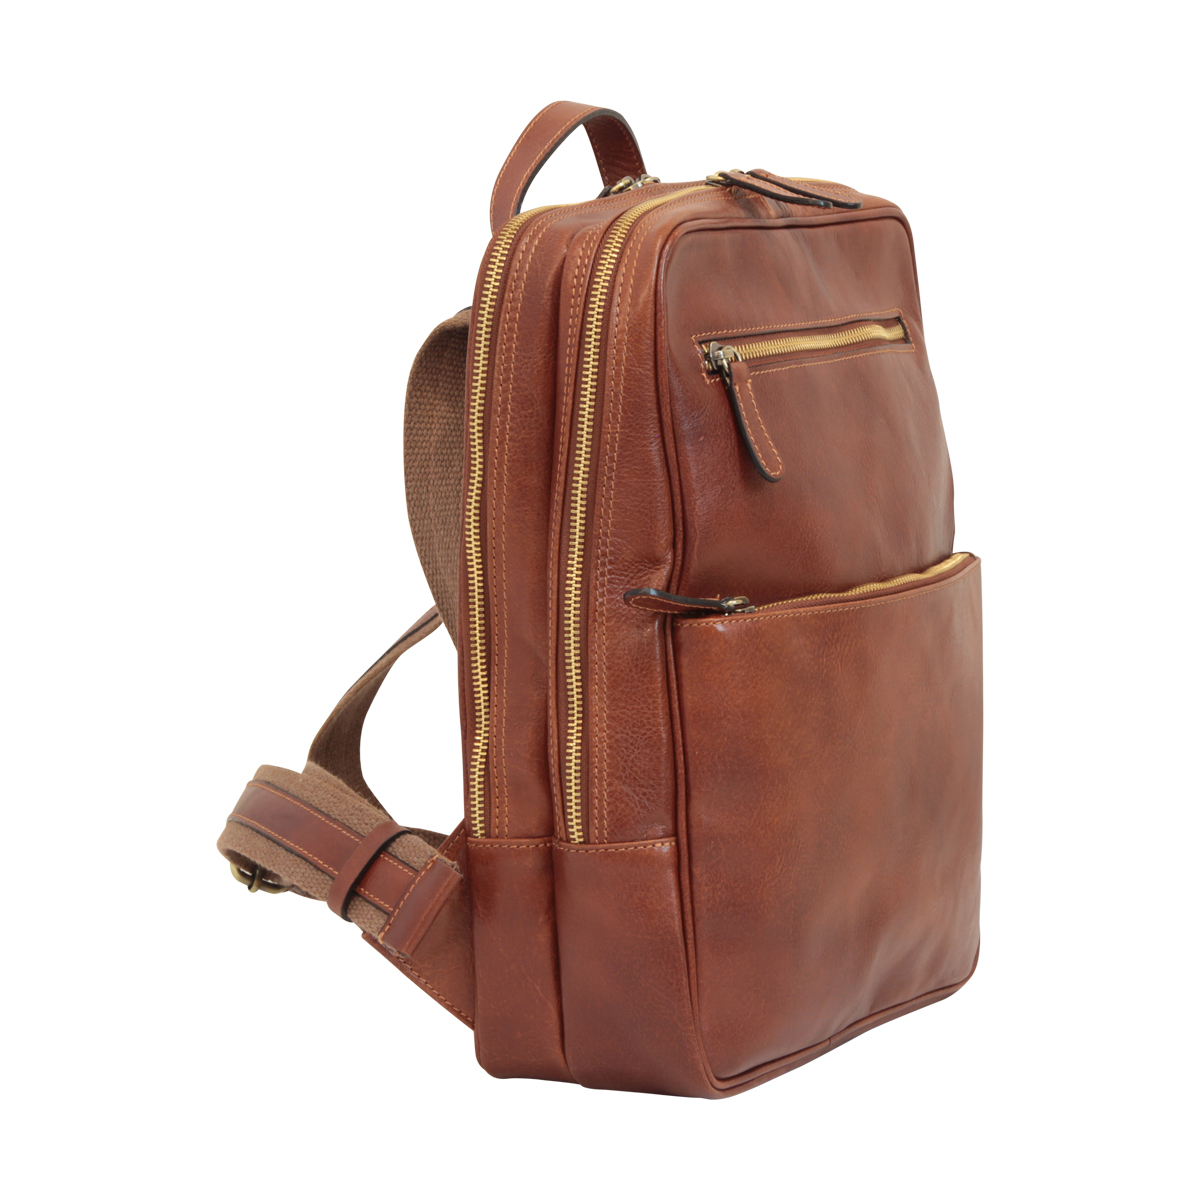 Leather backpack  413589MA | 413589MA US | Old Angler Firenze